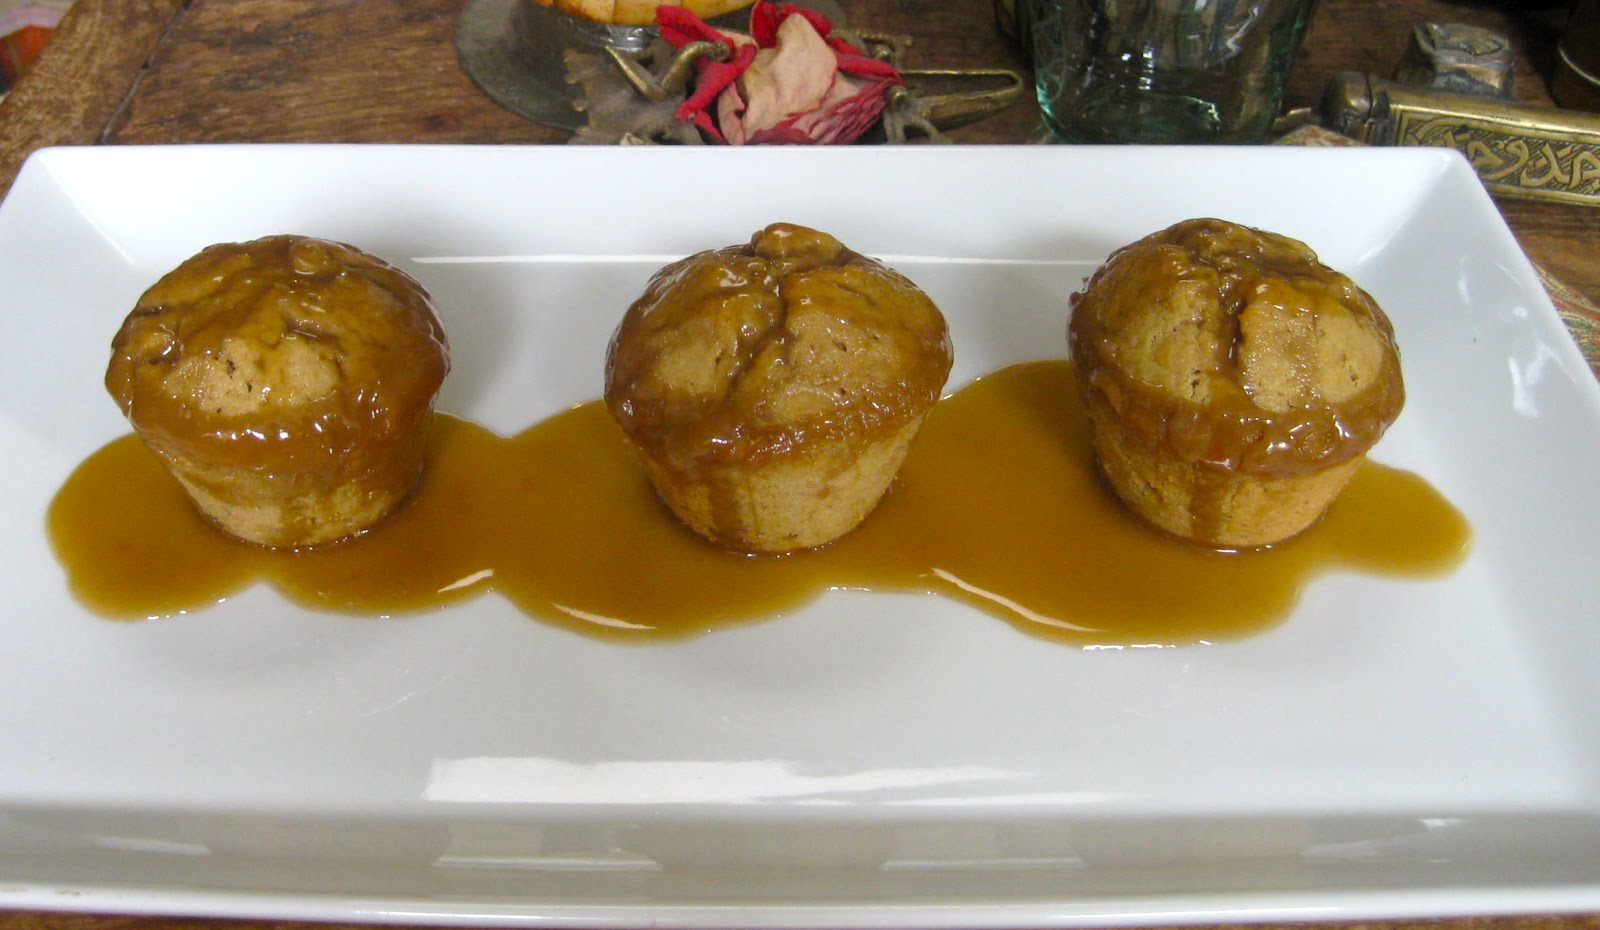 Flavors of the Sun: Sticky Toffee Banana Pudding Cakes